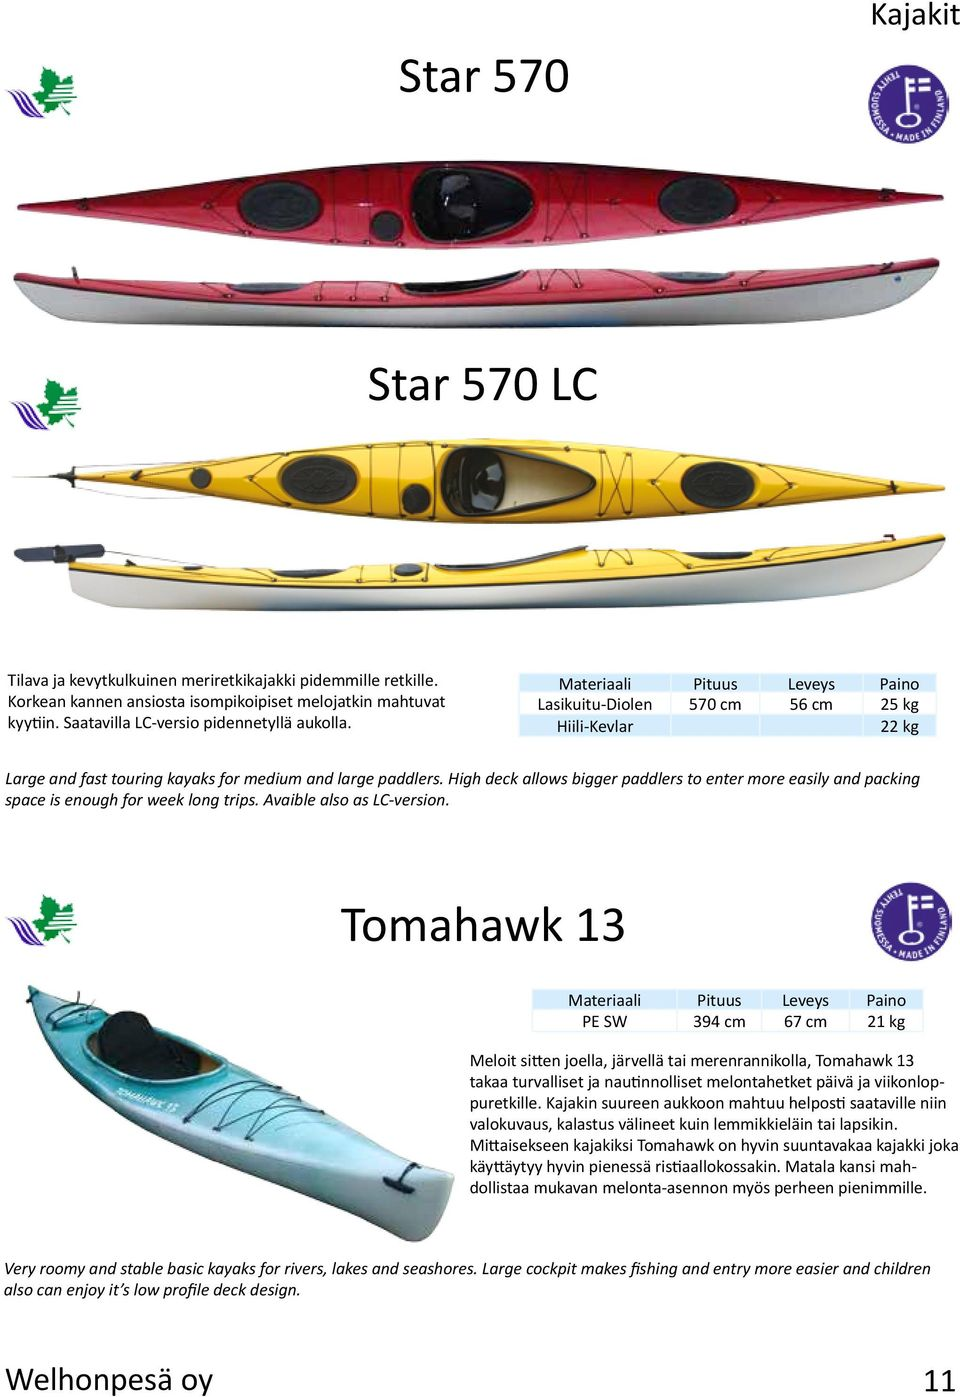 High deck allows bigger paddlers to enter more easily and packing space is enough for week long trips. Avaible also as LC-version.